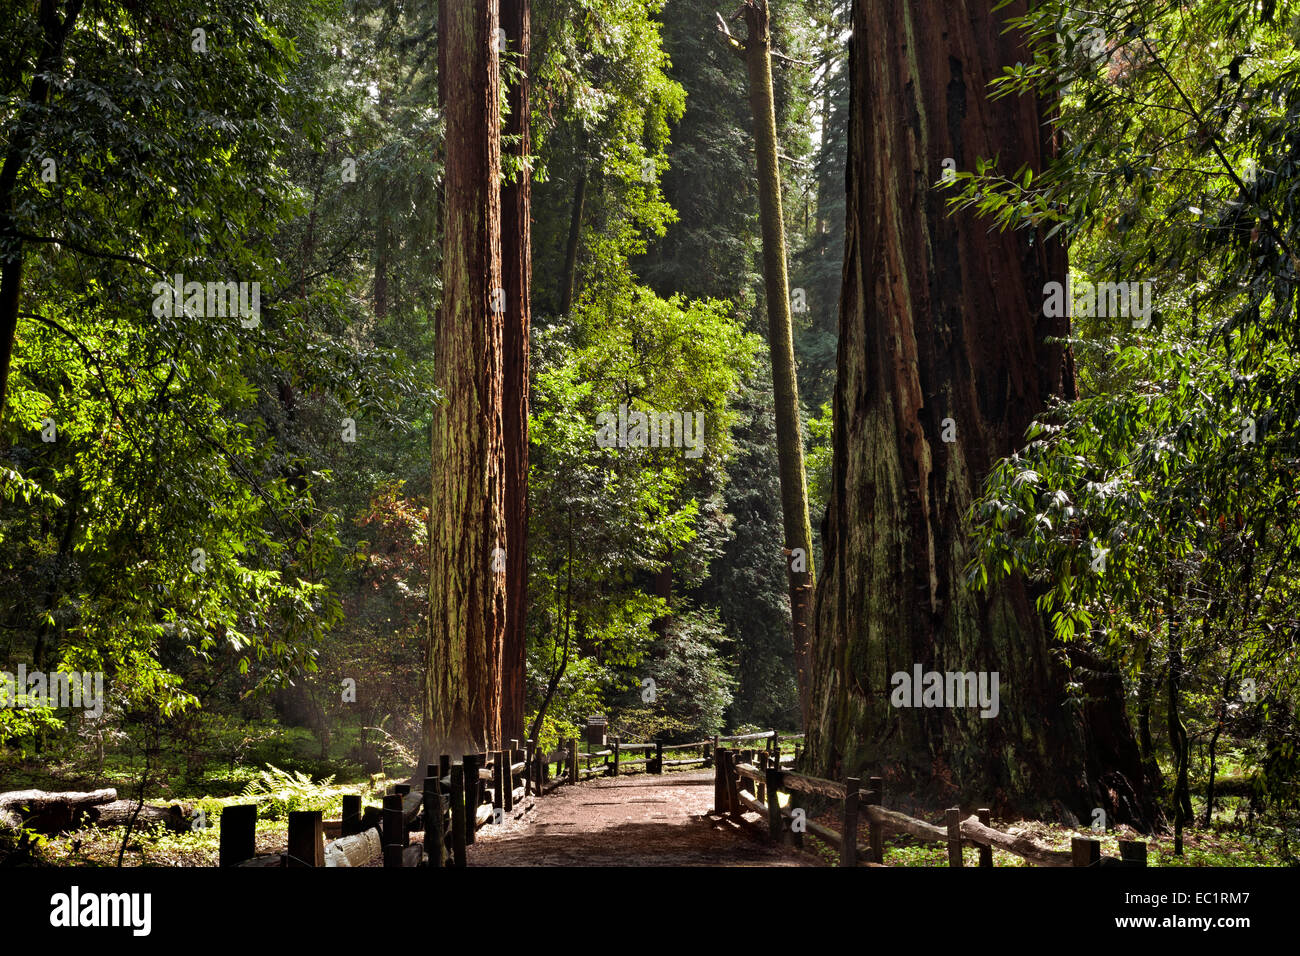 CA02451-00...CALIFORNIA - Redwood trees along the Redwood Grove Loop Trail in Henry Cowell Redwoods State Park. - Stock Image